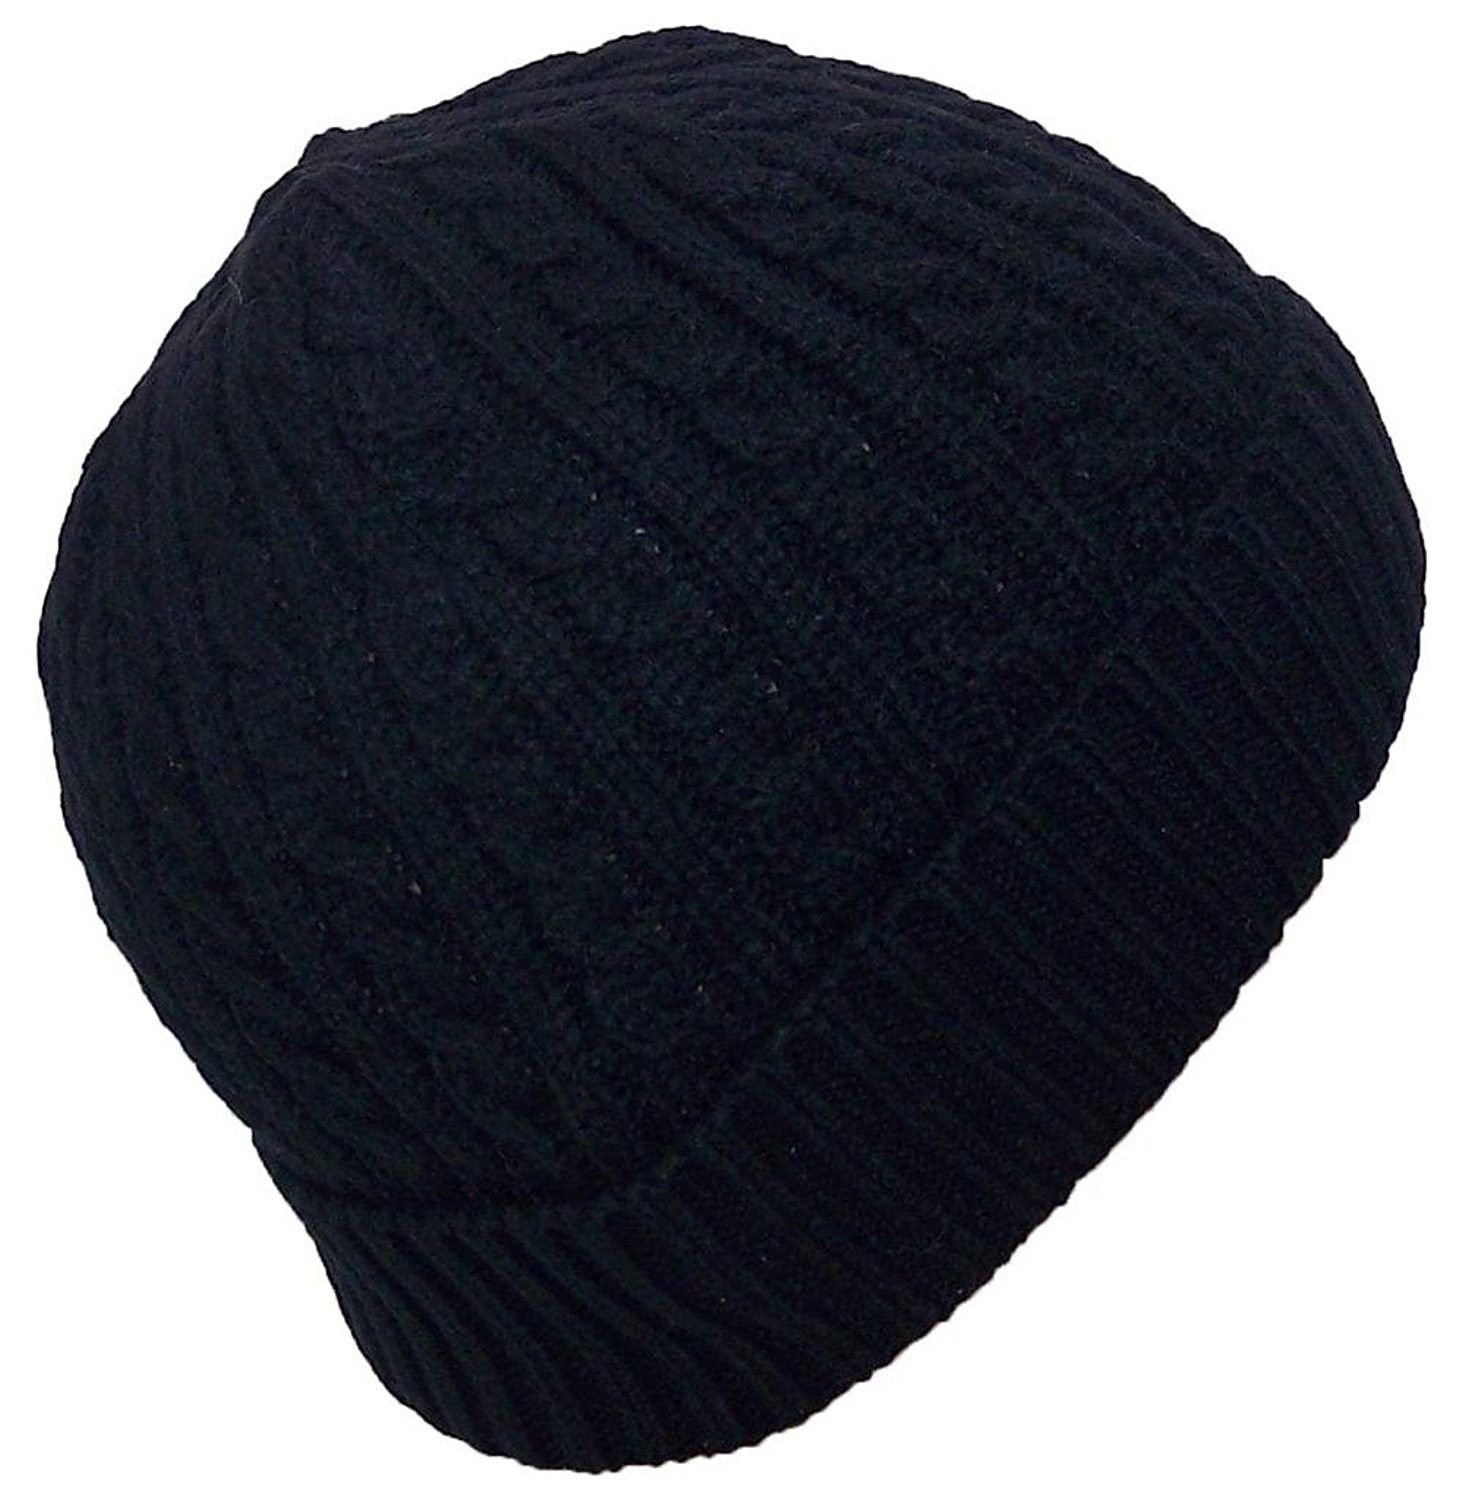 236588b7655 Adult Tight Cable   Rib Knit Cuffed Winter Hat (One Size) - Black ...